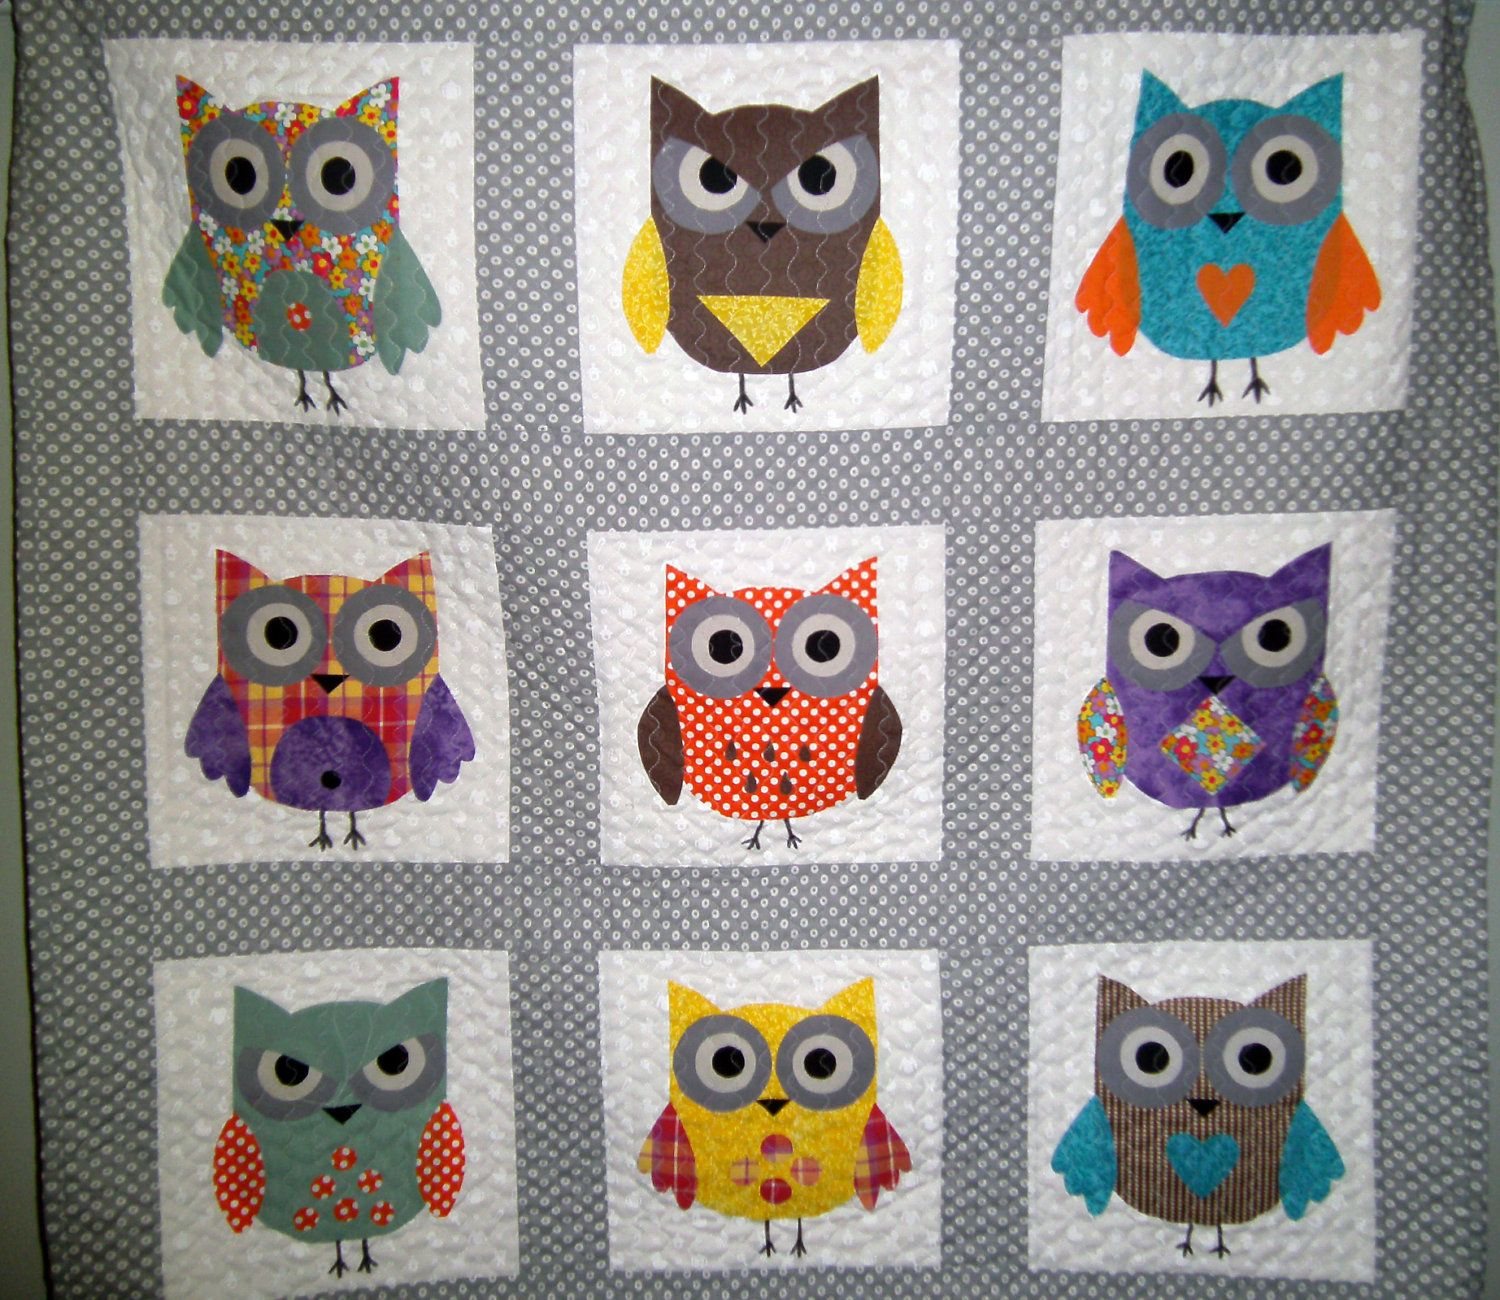 Baby Owl Quilt, | Owls | Pinterest | Owl quilts, Baby owl and Owl : owl quilt patterns baby - Adamdwight.com